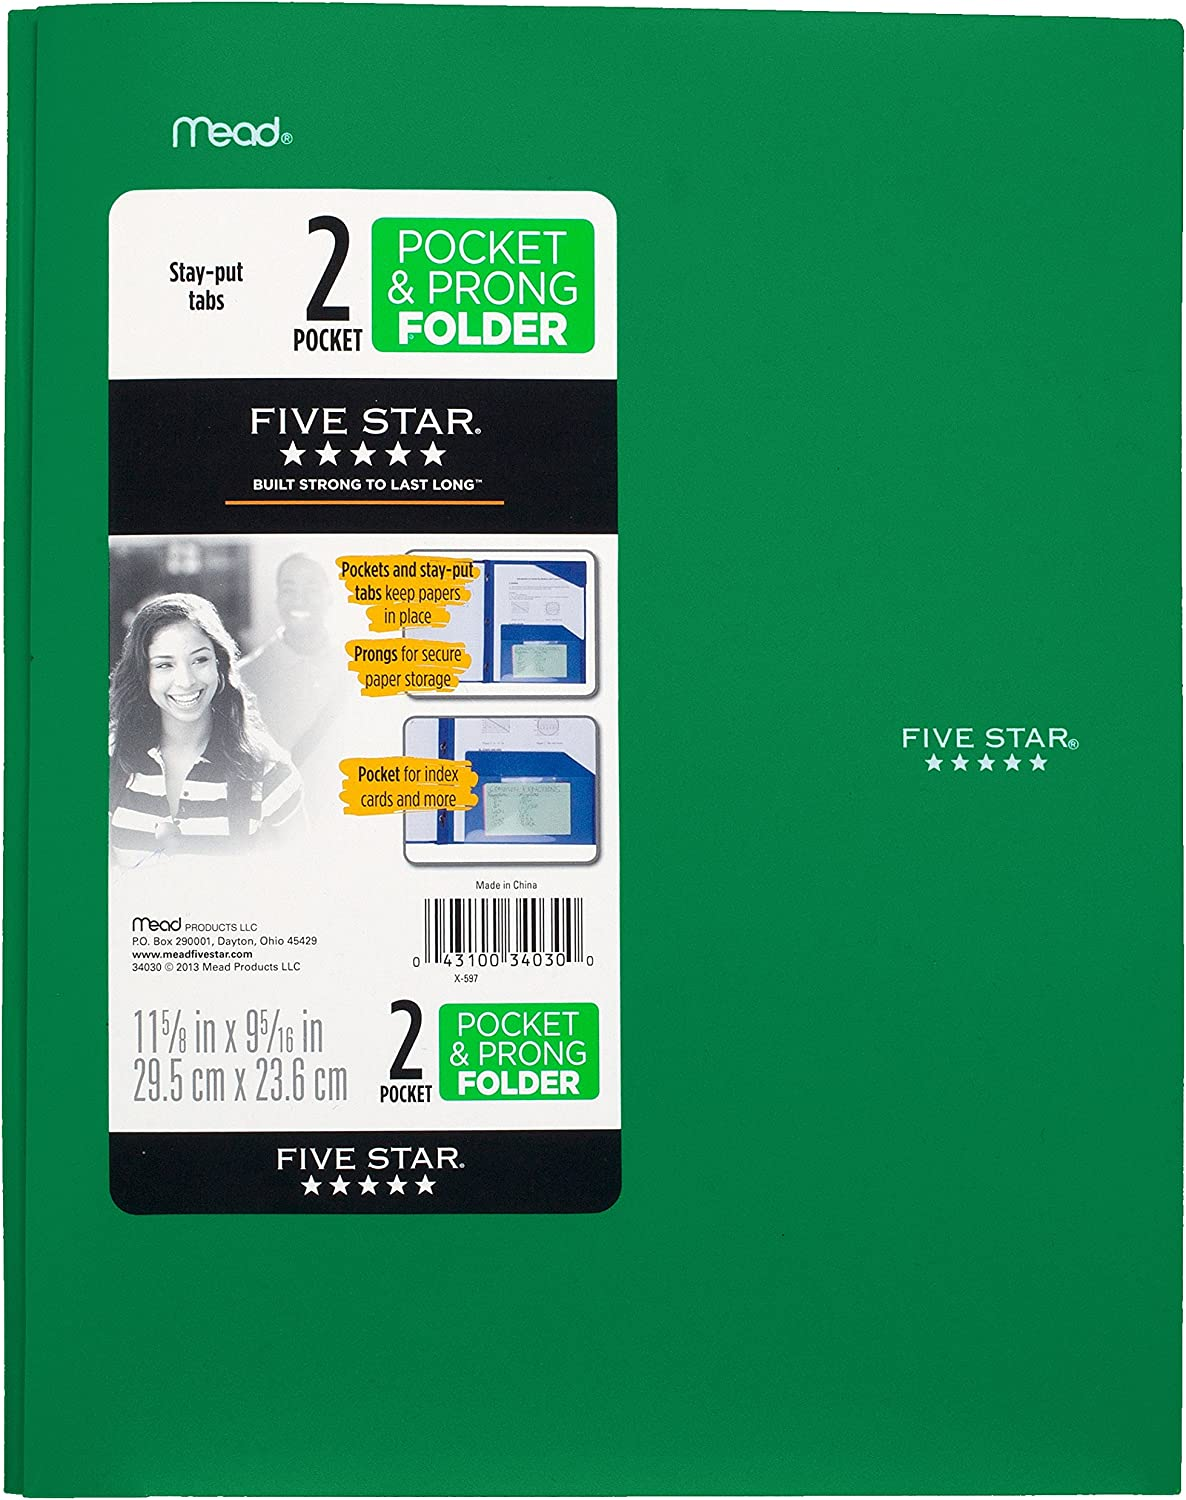 Five Star 2 Pocket Folders with Prong Fasteners, Stay-Put Folder, Folders with Pockets, Plastic, Black, Red, Green, Blue, 4 Pack (38064) : Office Products